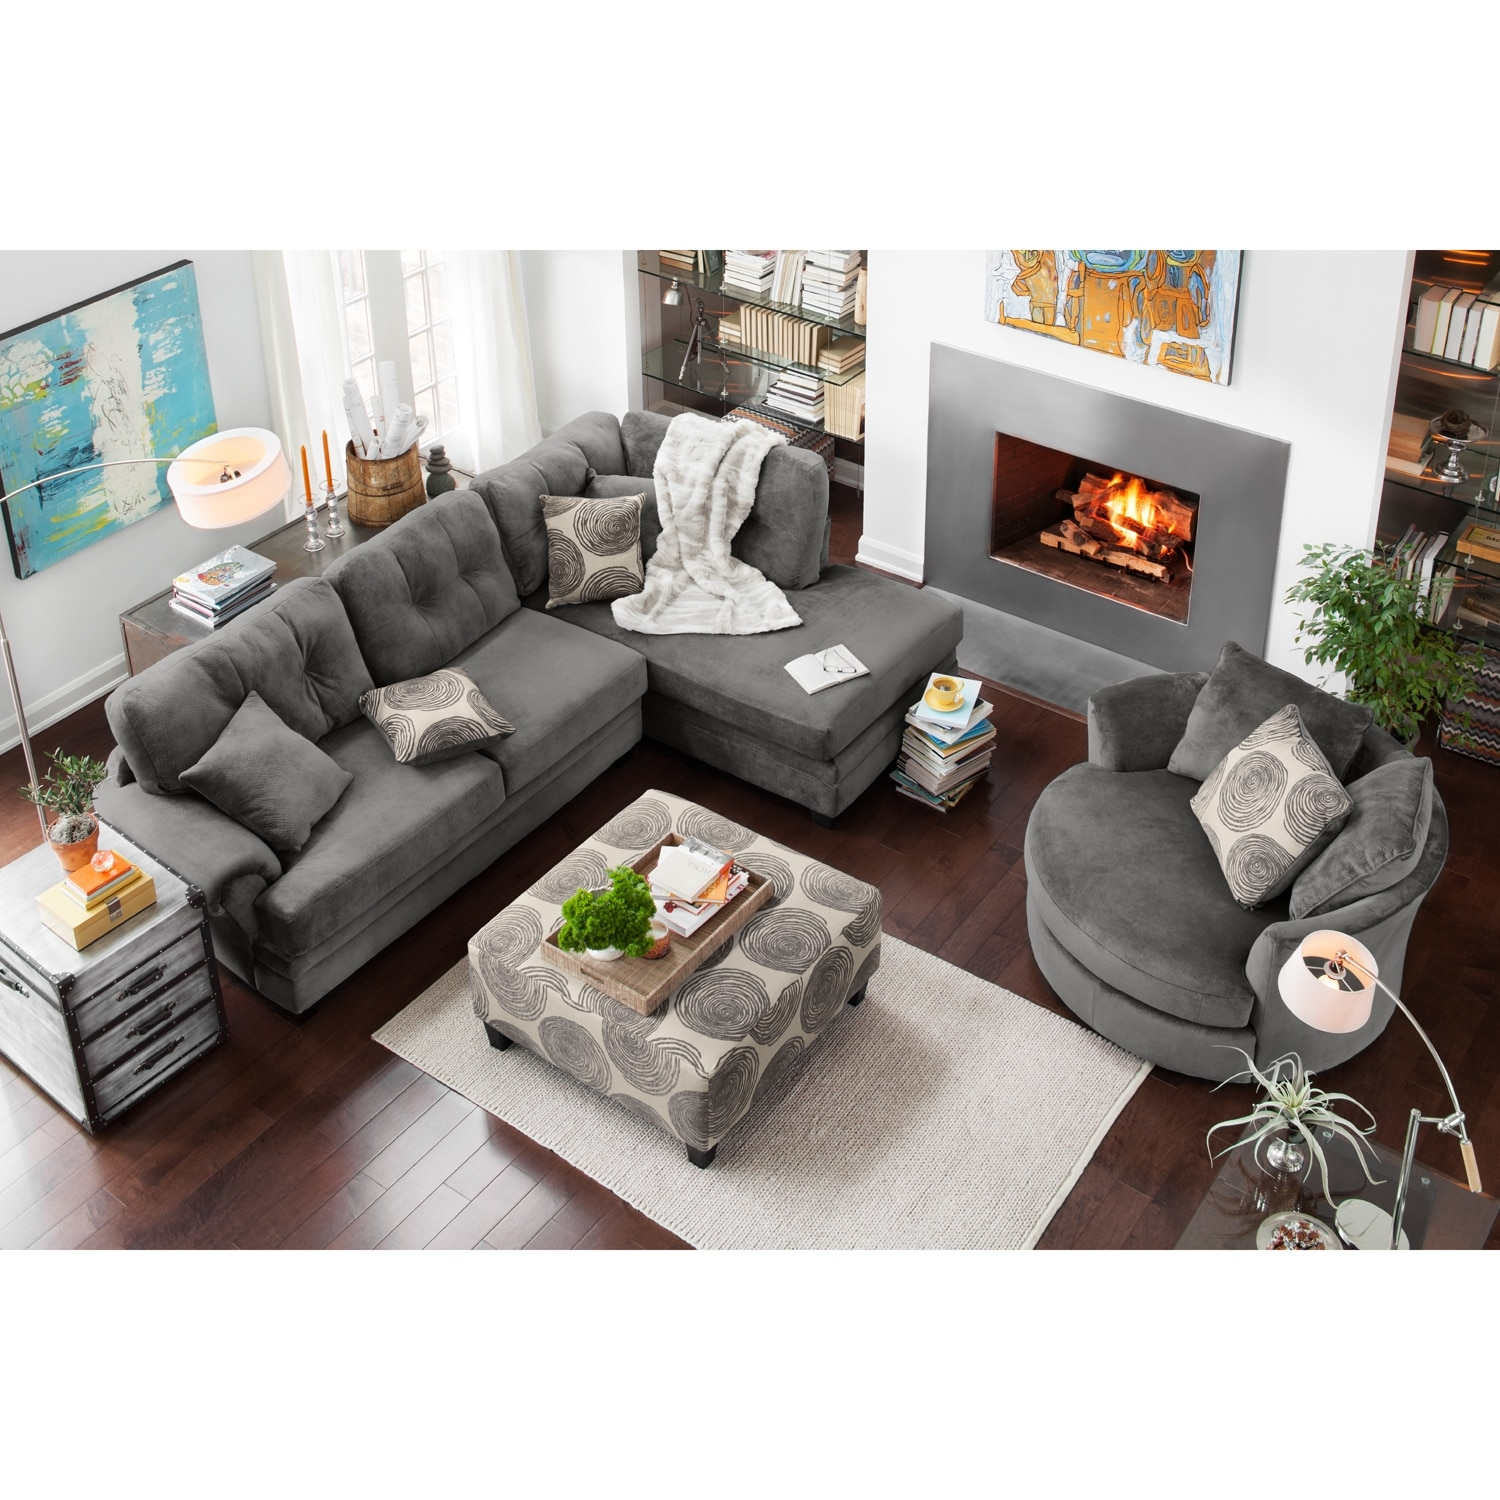 Two Piece Sectional Chaise